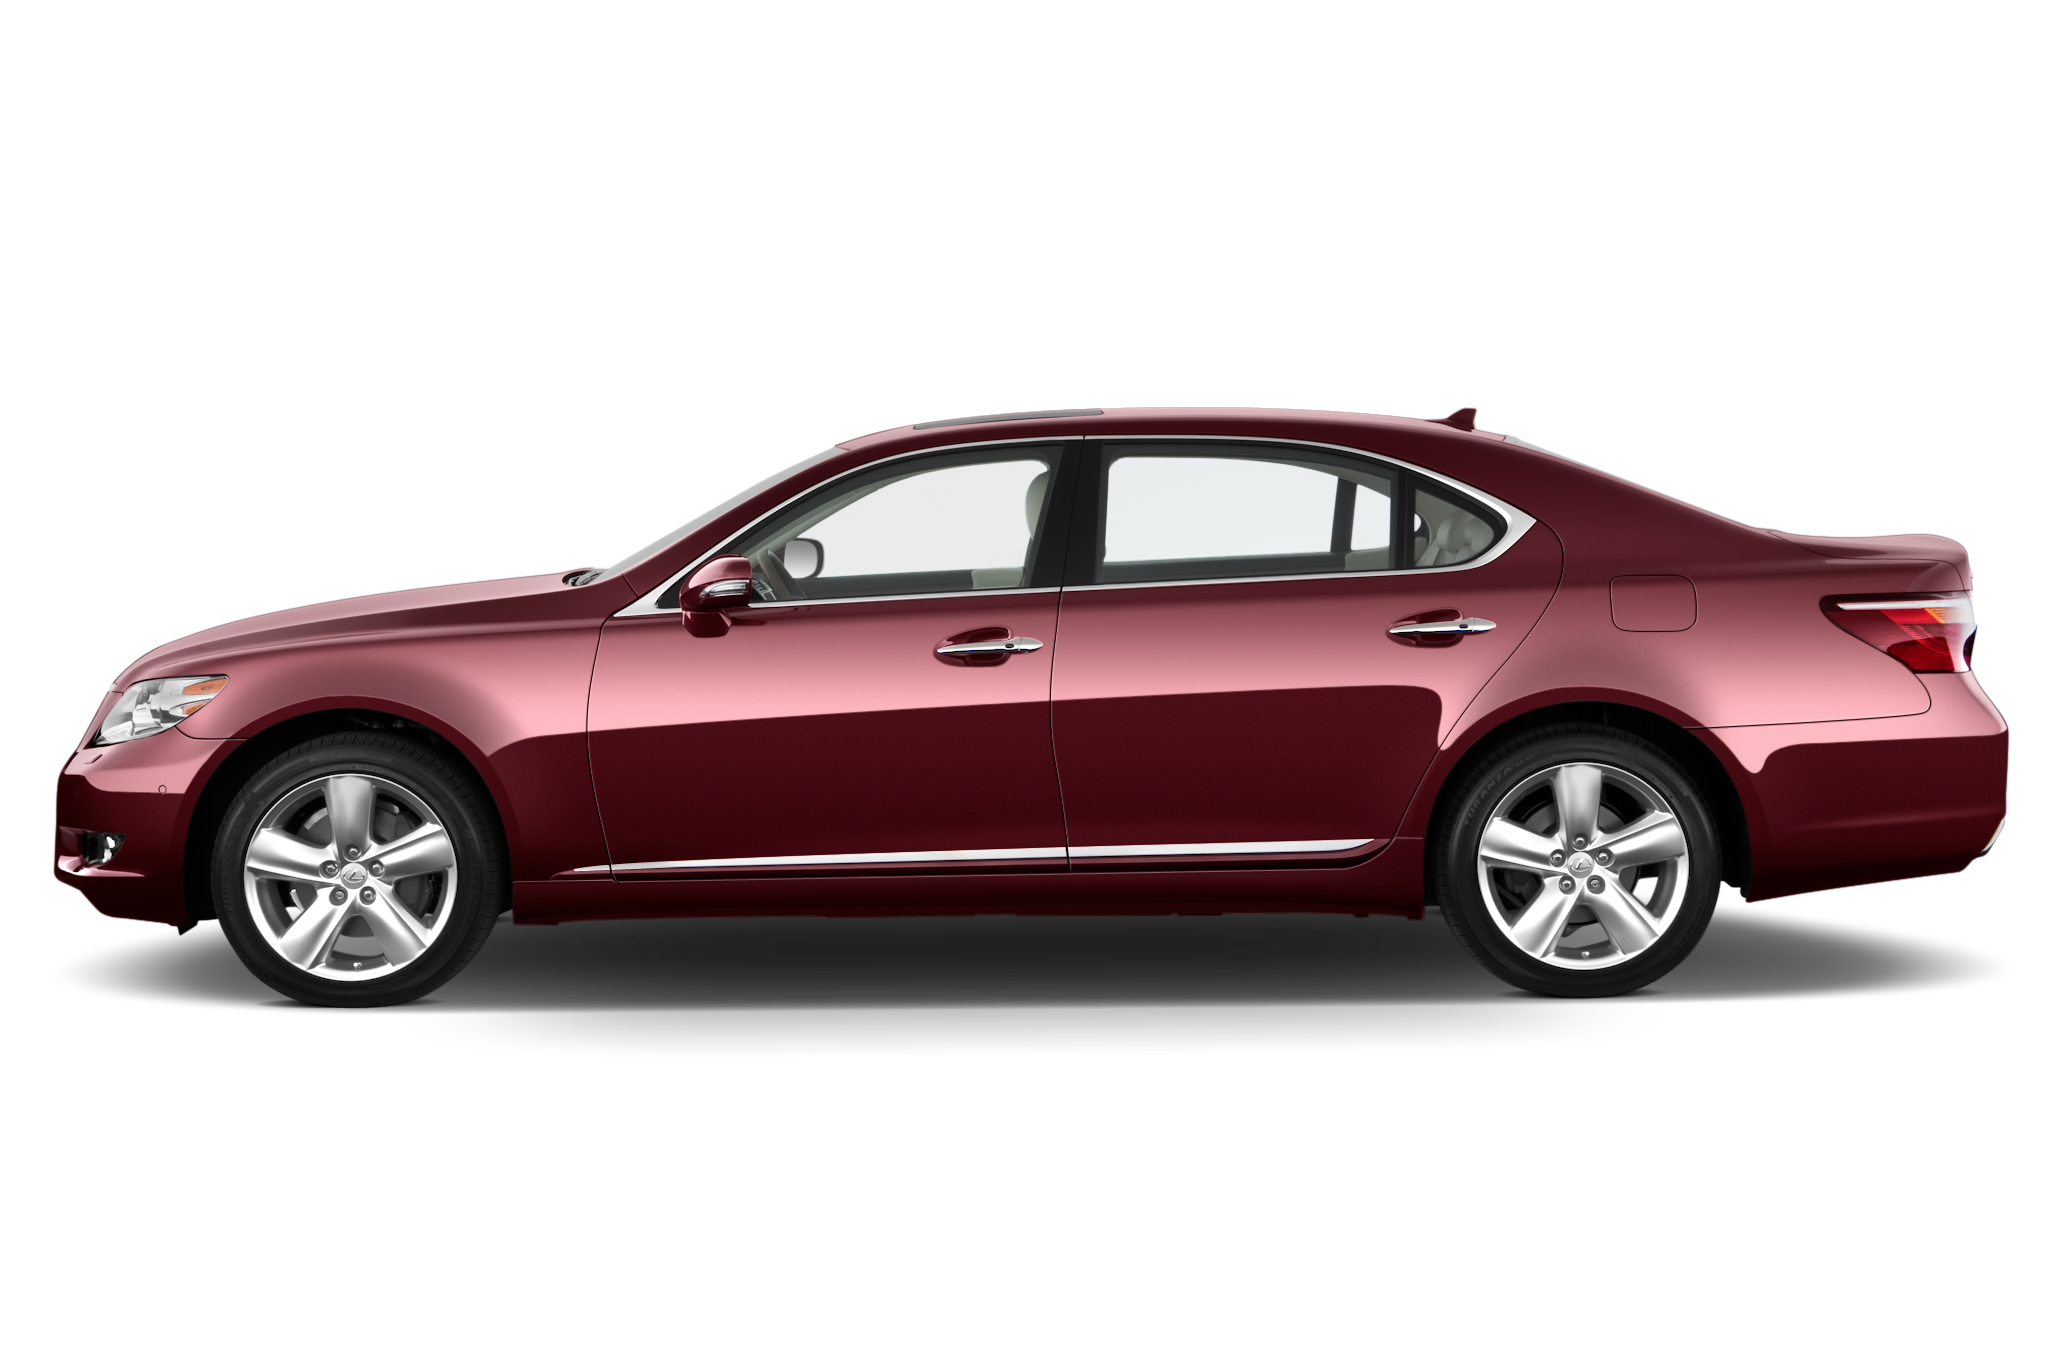 2010 lexus ls 460 to receive sport package minor updates. Black Bedroom Furniture Sets. Home Design Ideas